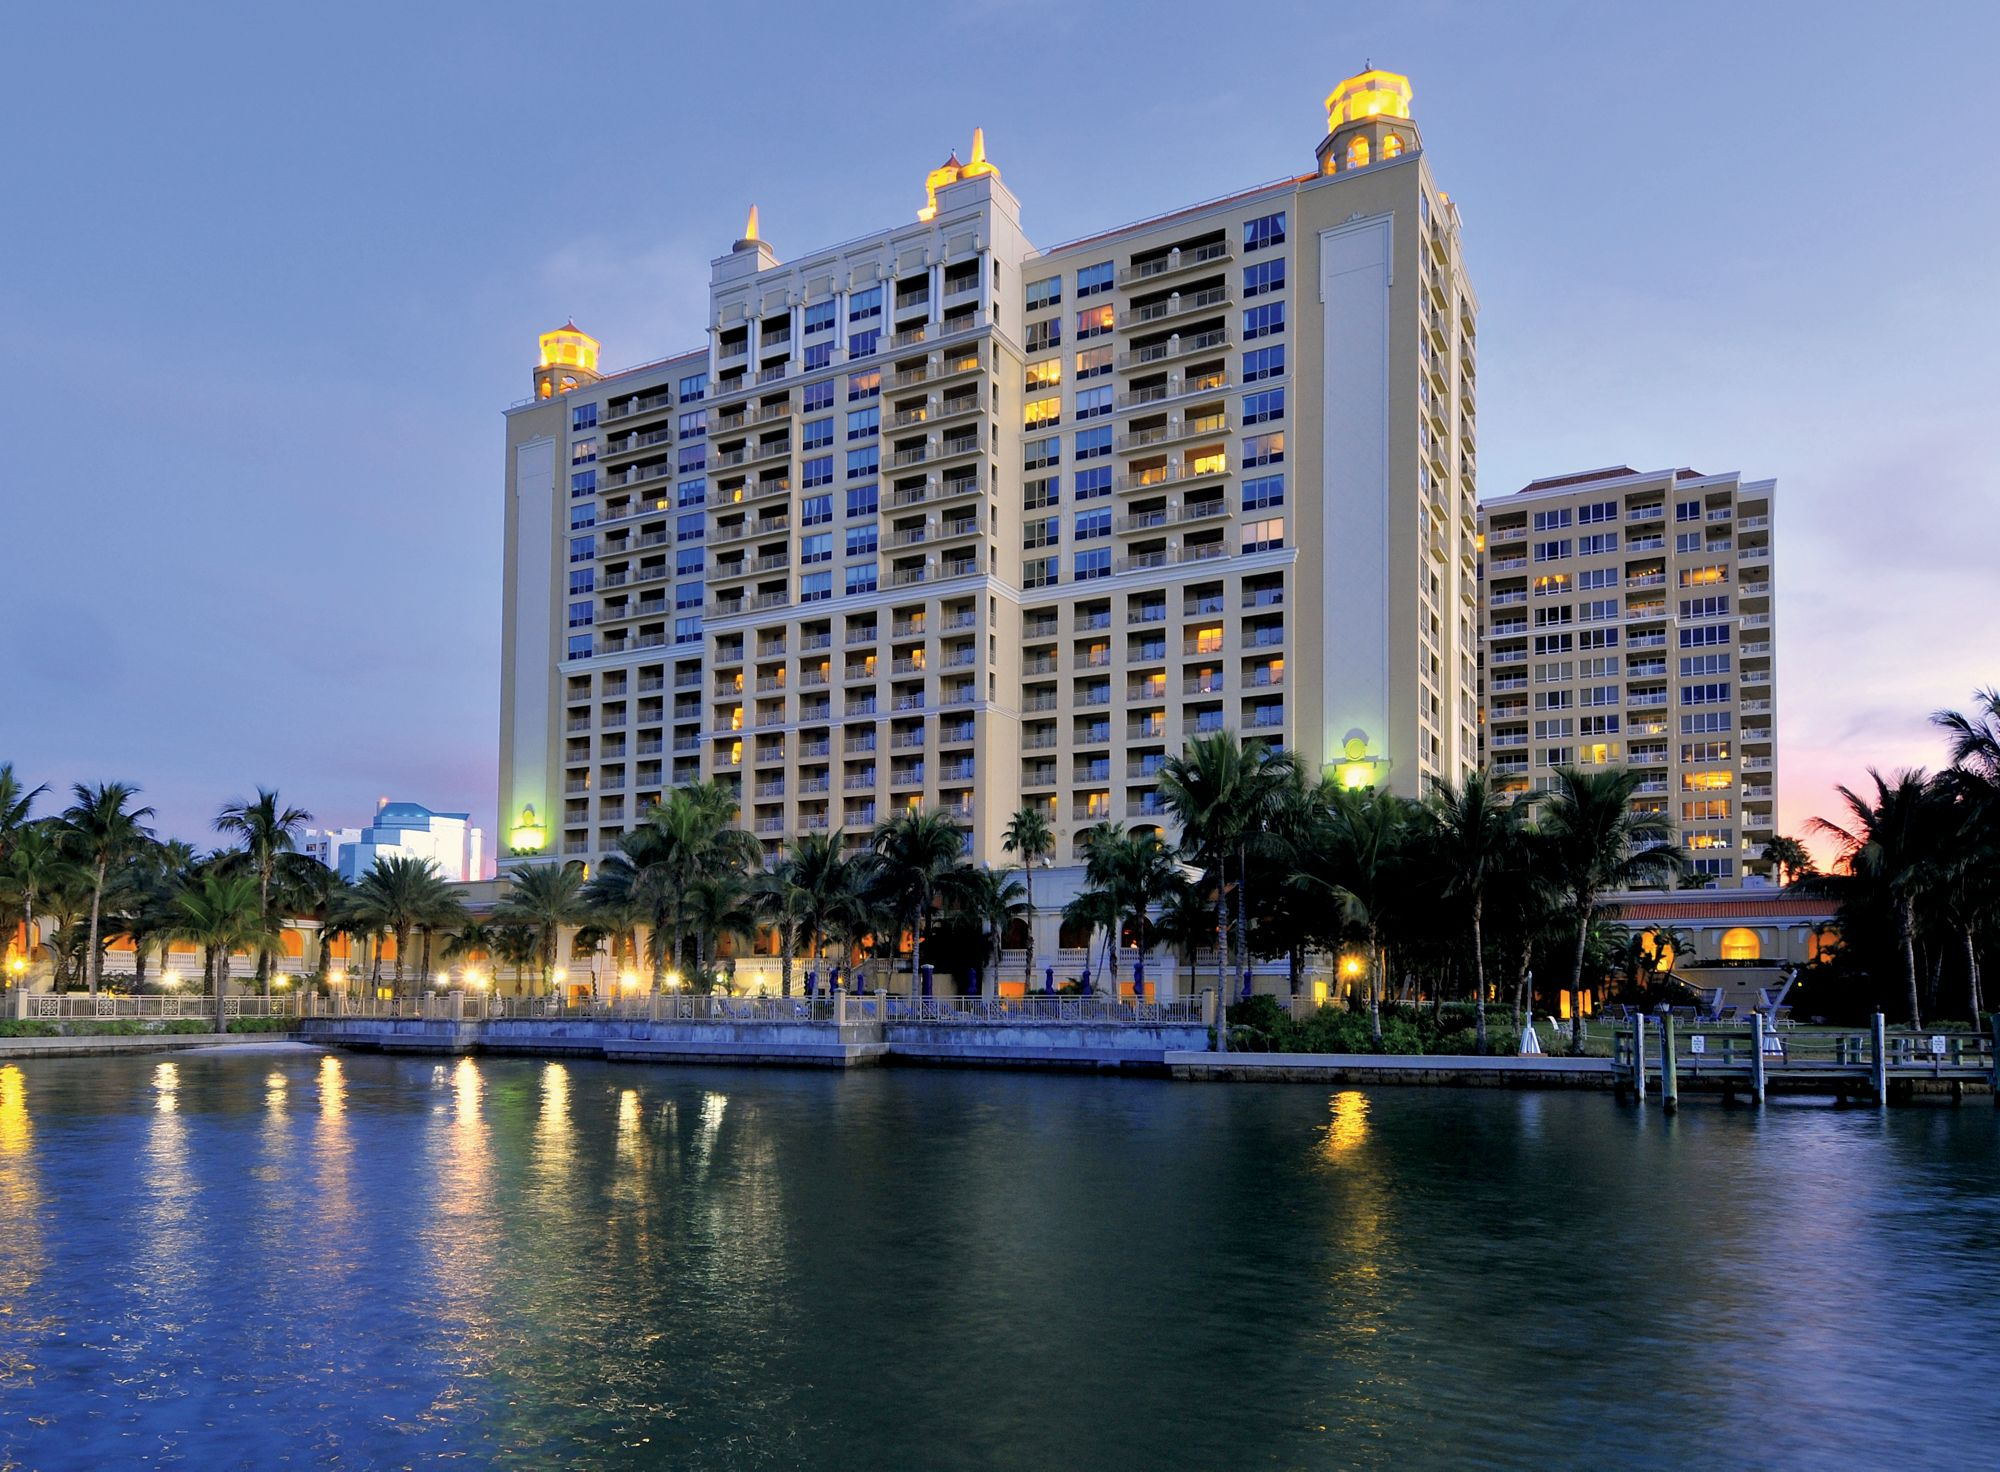 The Ritz-Carlton was constructed in 2001 on the very spot the El Verona was located.